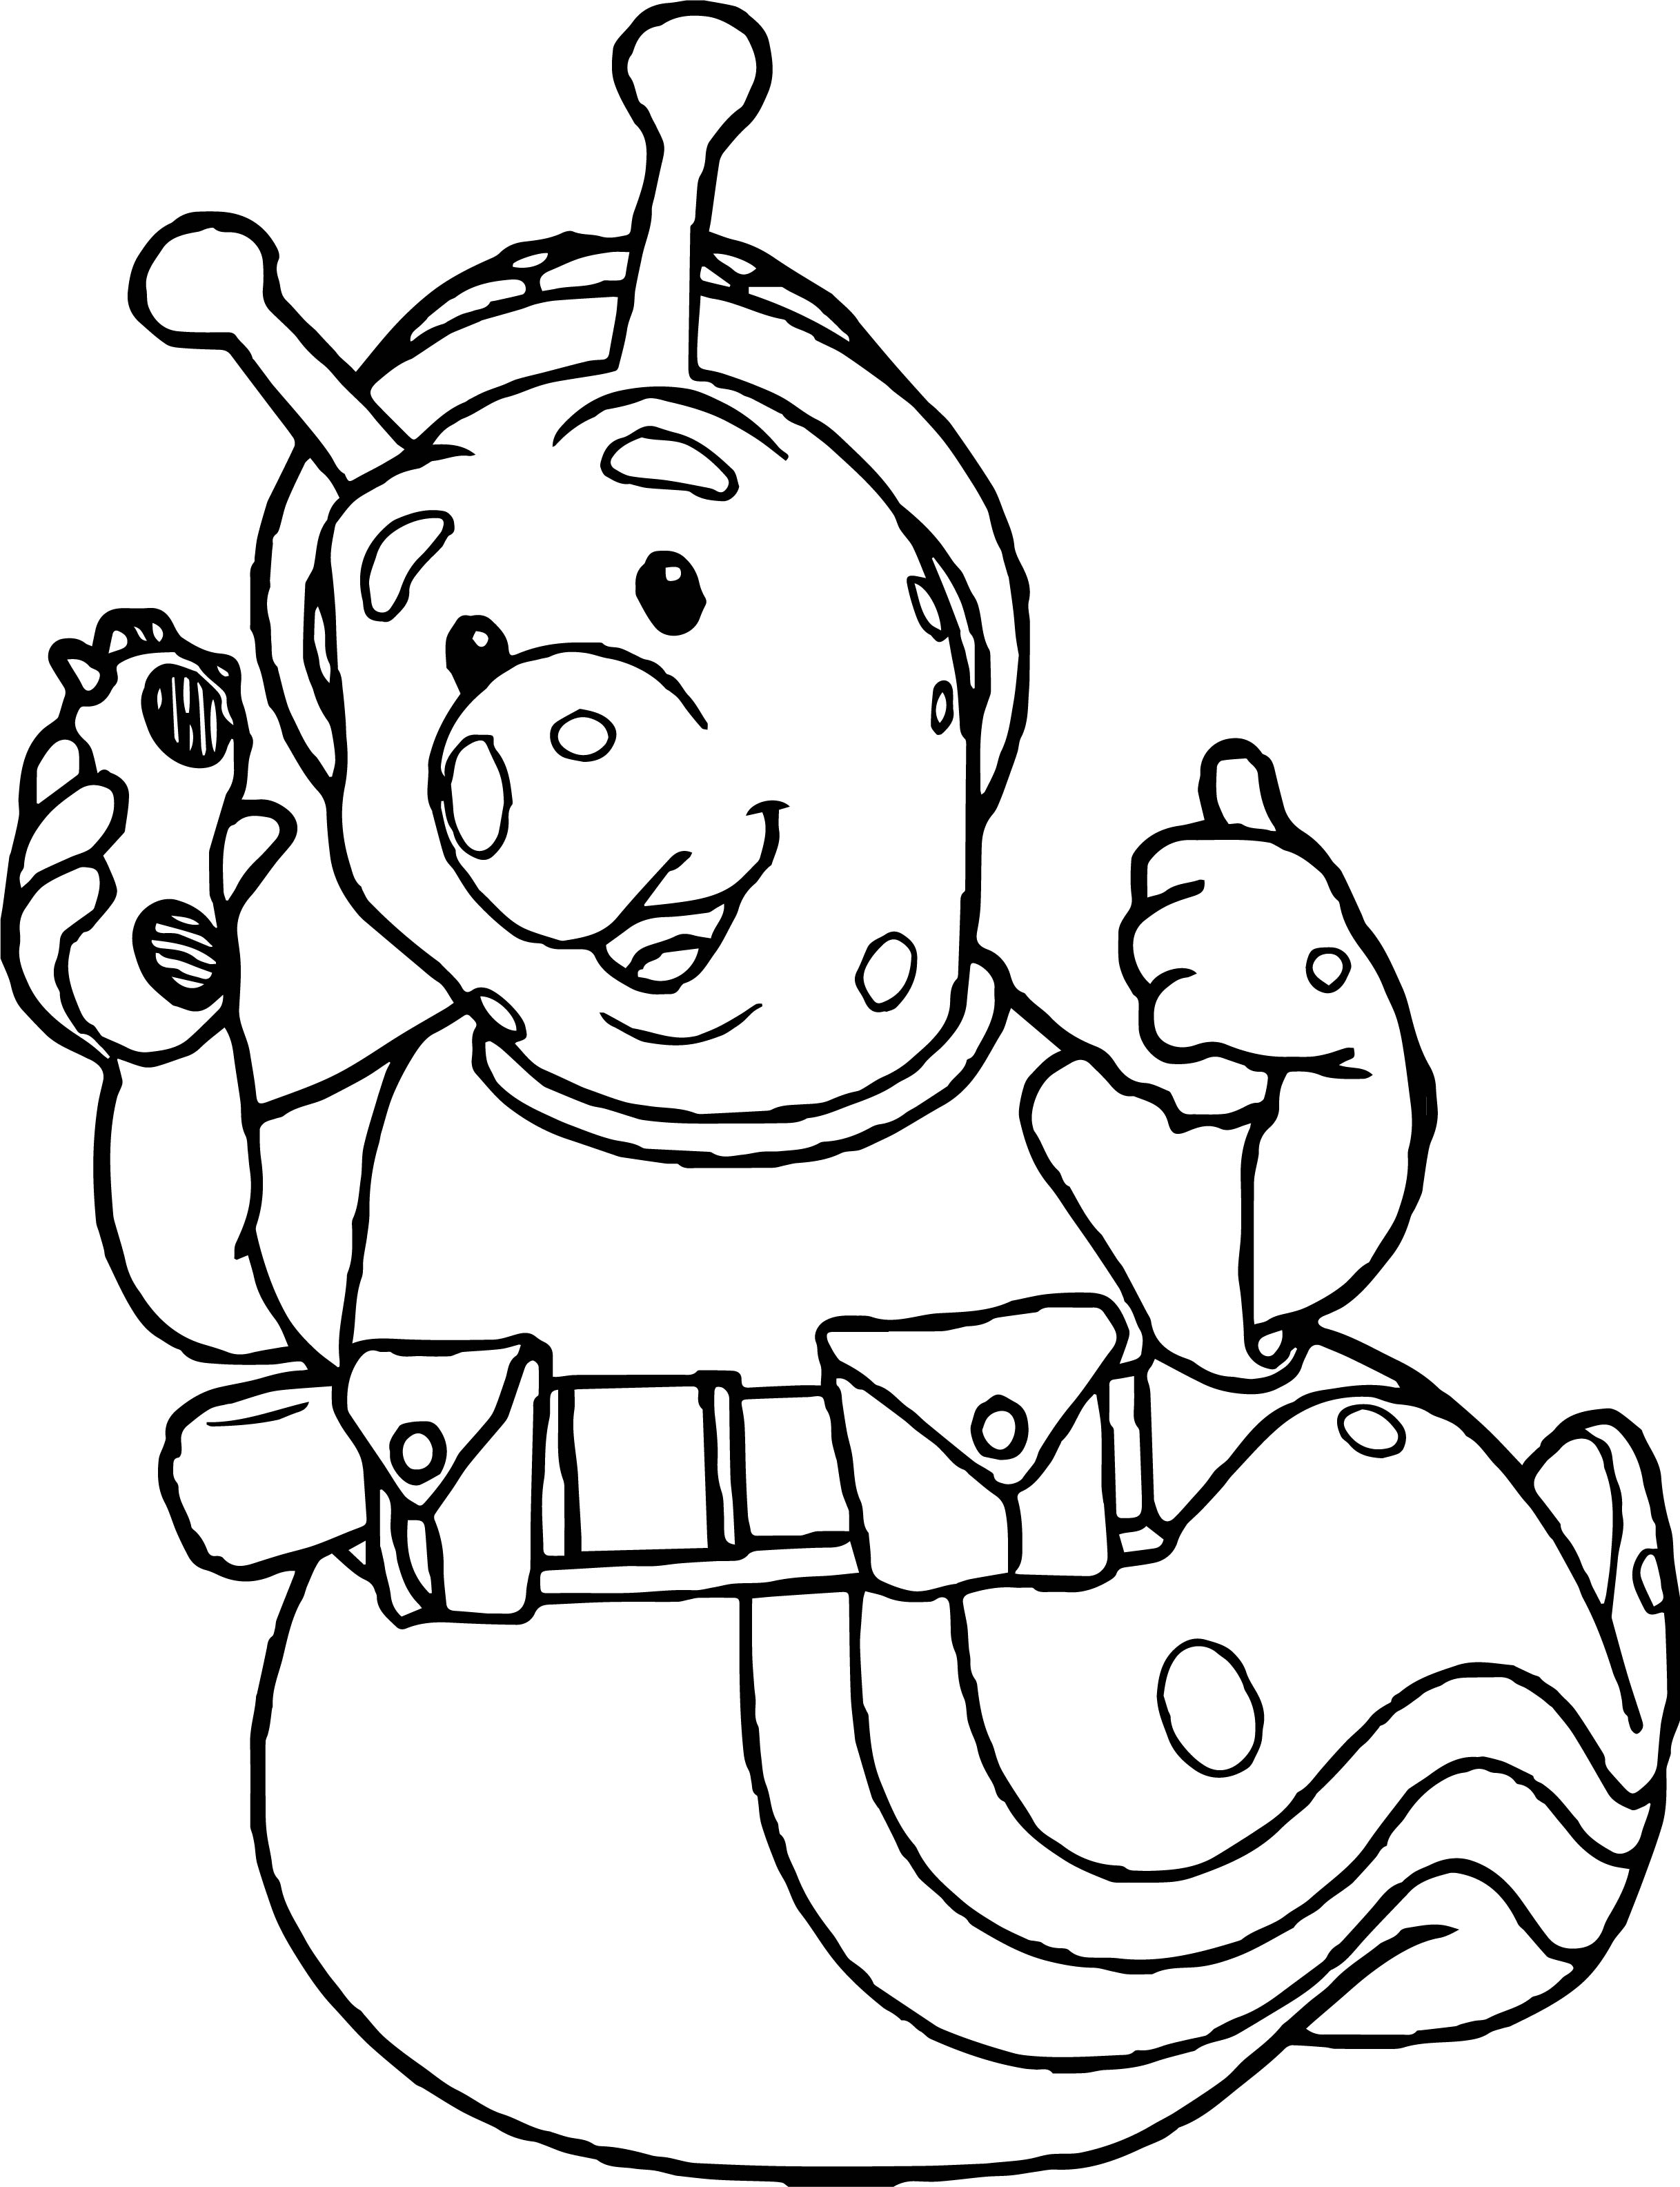 Fifi And The Flowertots Snail Coloring Page | Wecoloringpage.com